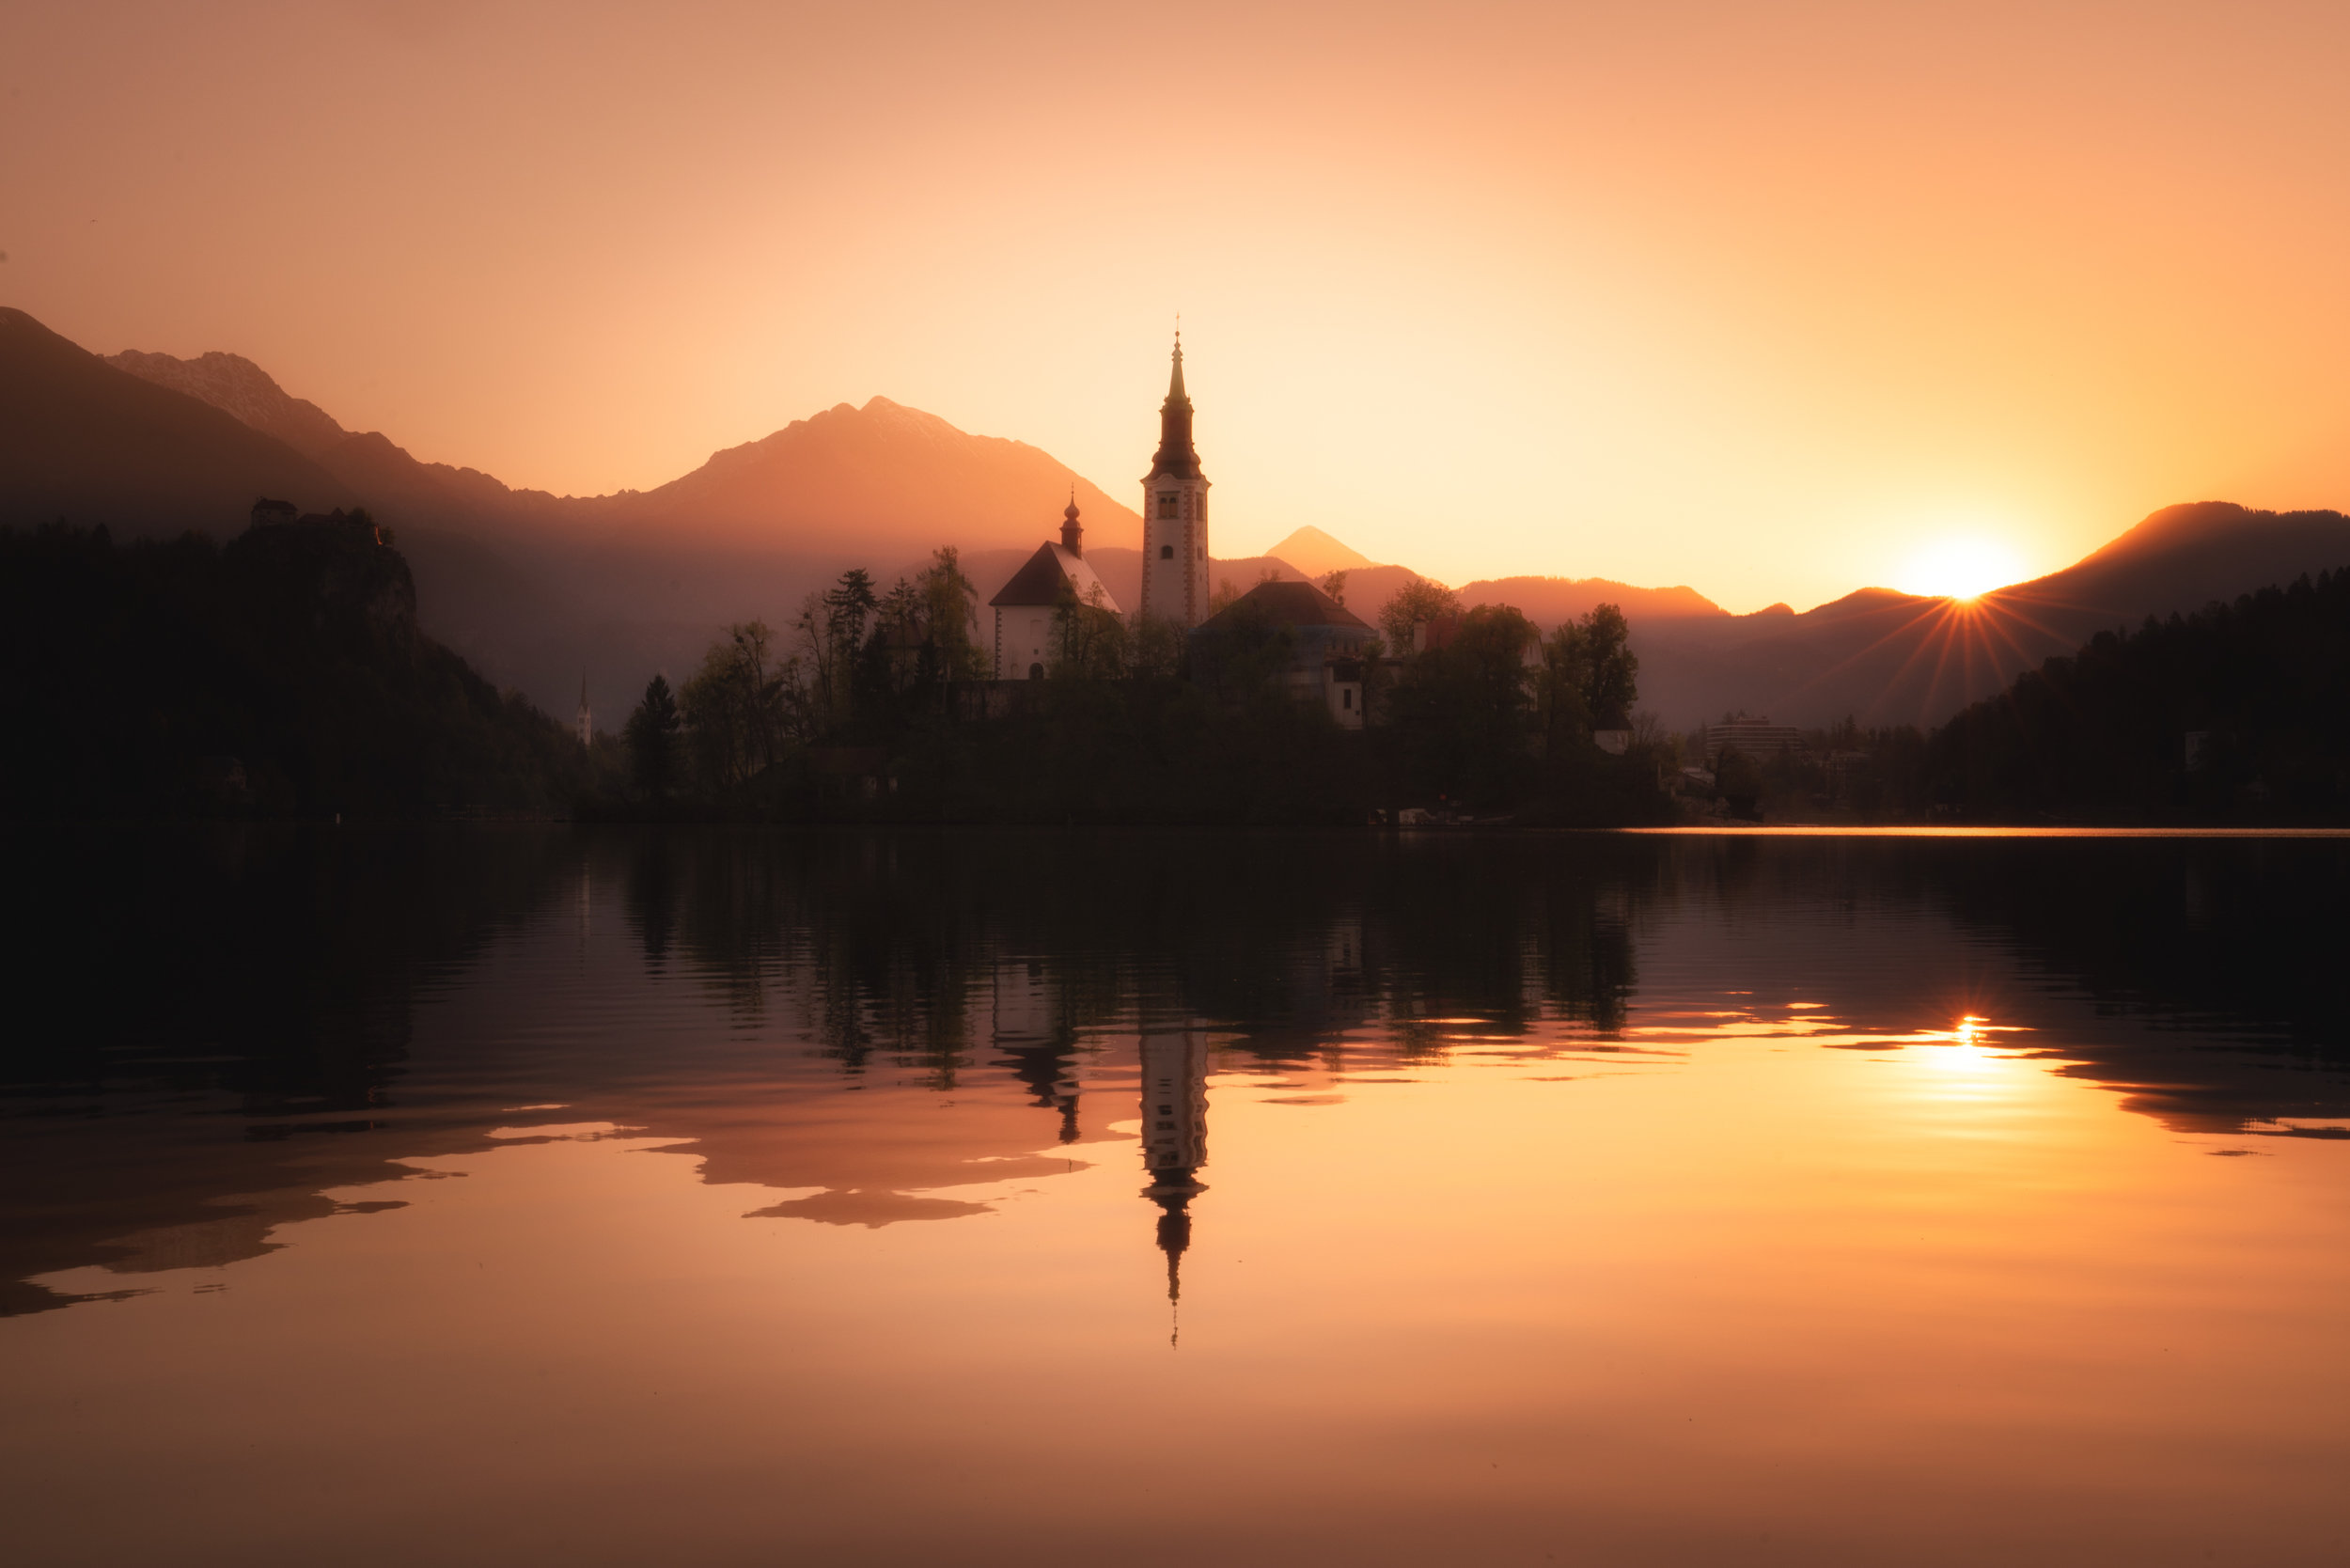 The Star of Bled